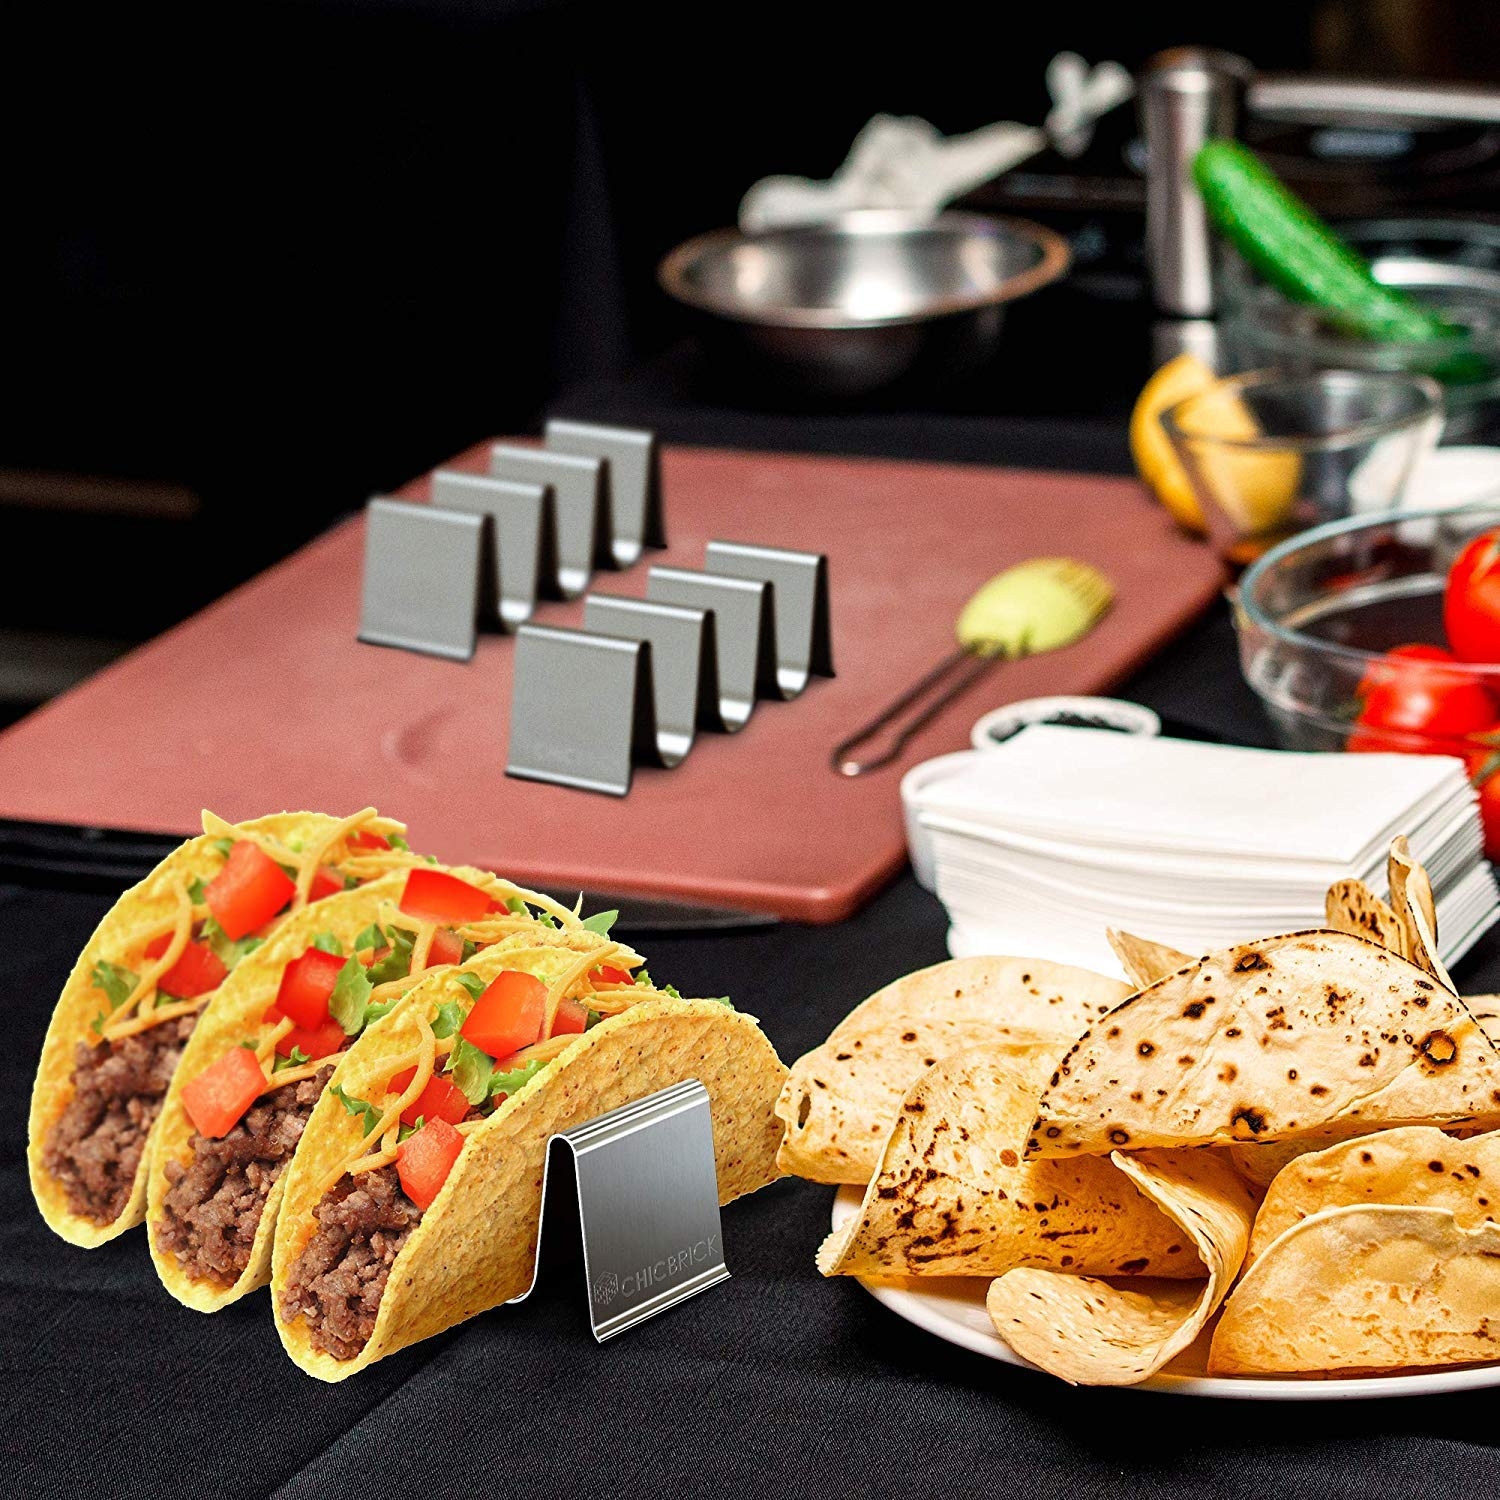 Set of 2 Taco Stand Ideal for Taco Tuesday /& Kids Party Oven Baking Taco Stand Up Plate Truck Style Dishwasher and Grill Safe Restaurant and Home CHICBRICK Curved/_2 Tortilla Rack Taco Holder Stainless Steel Tray